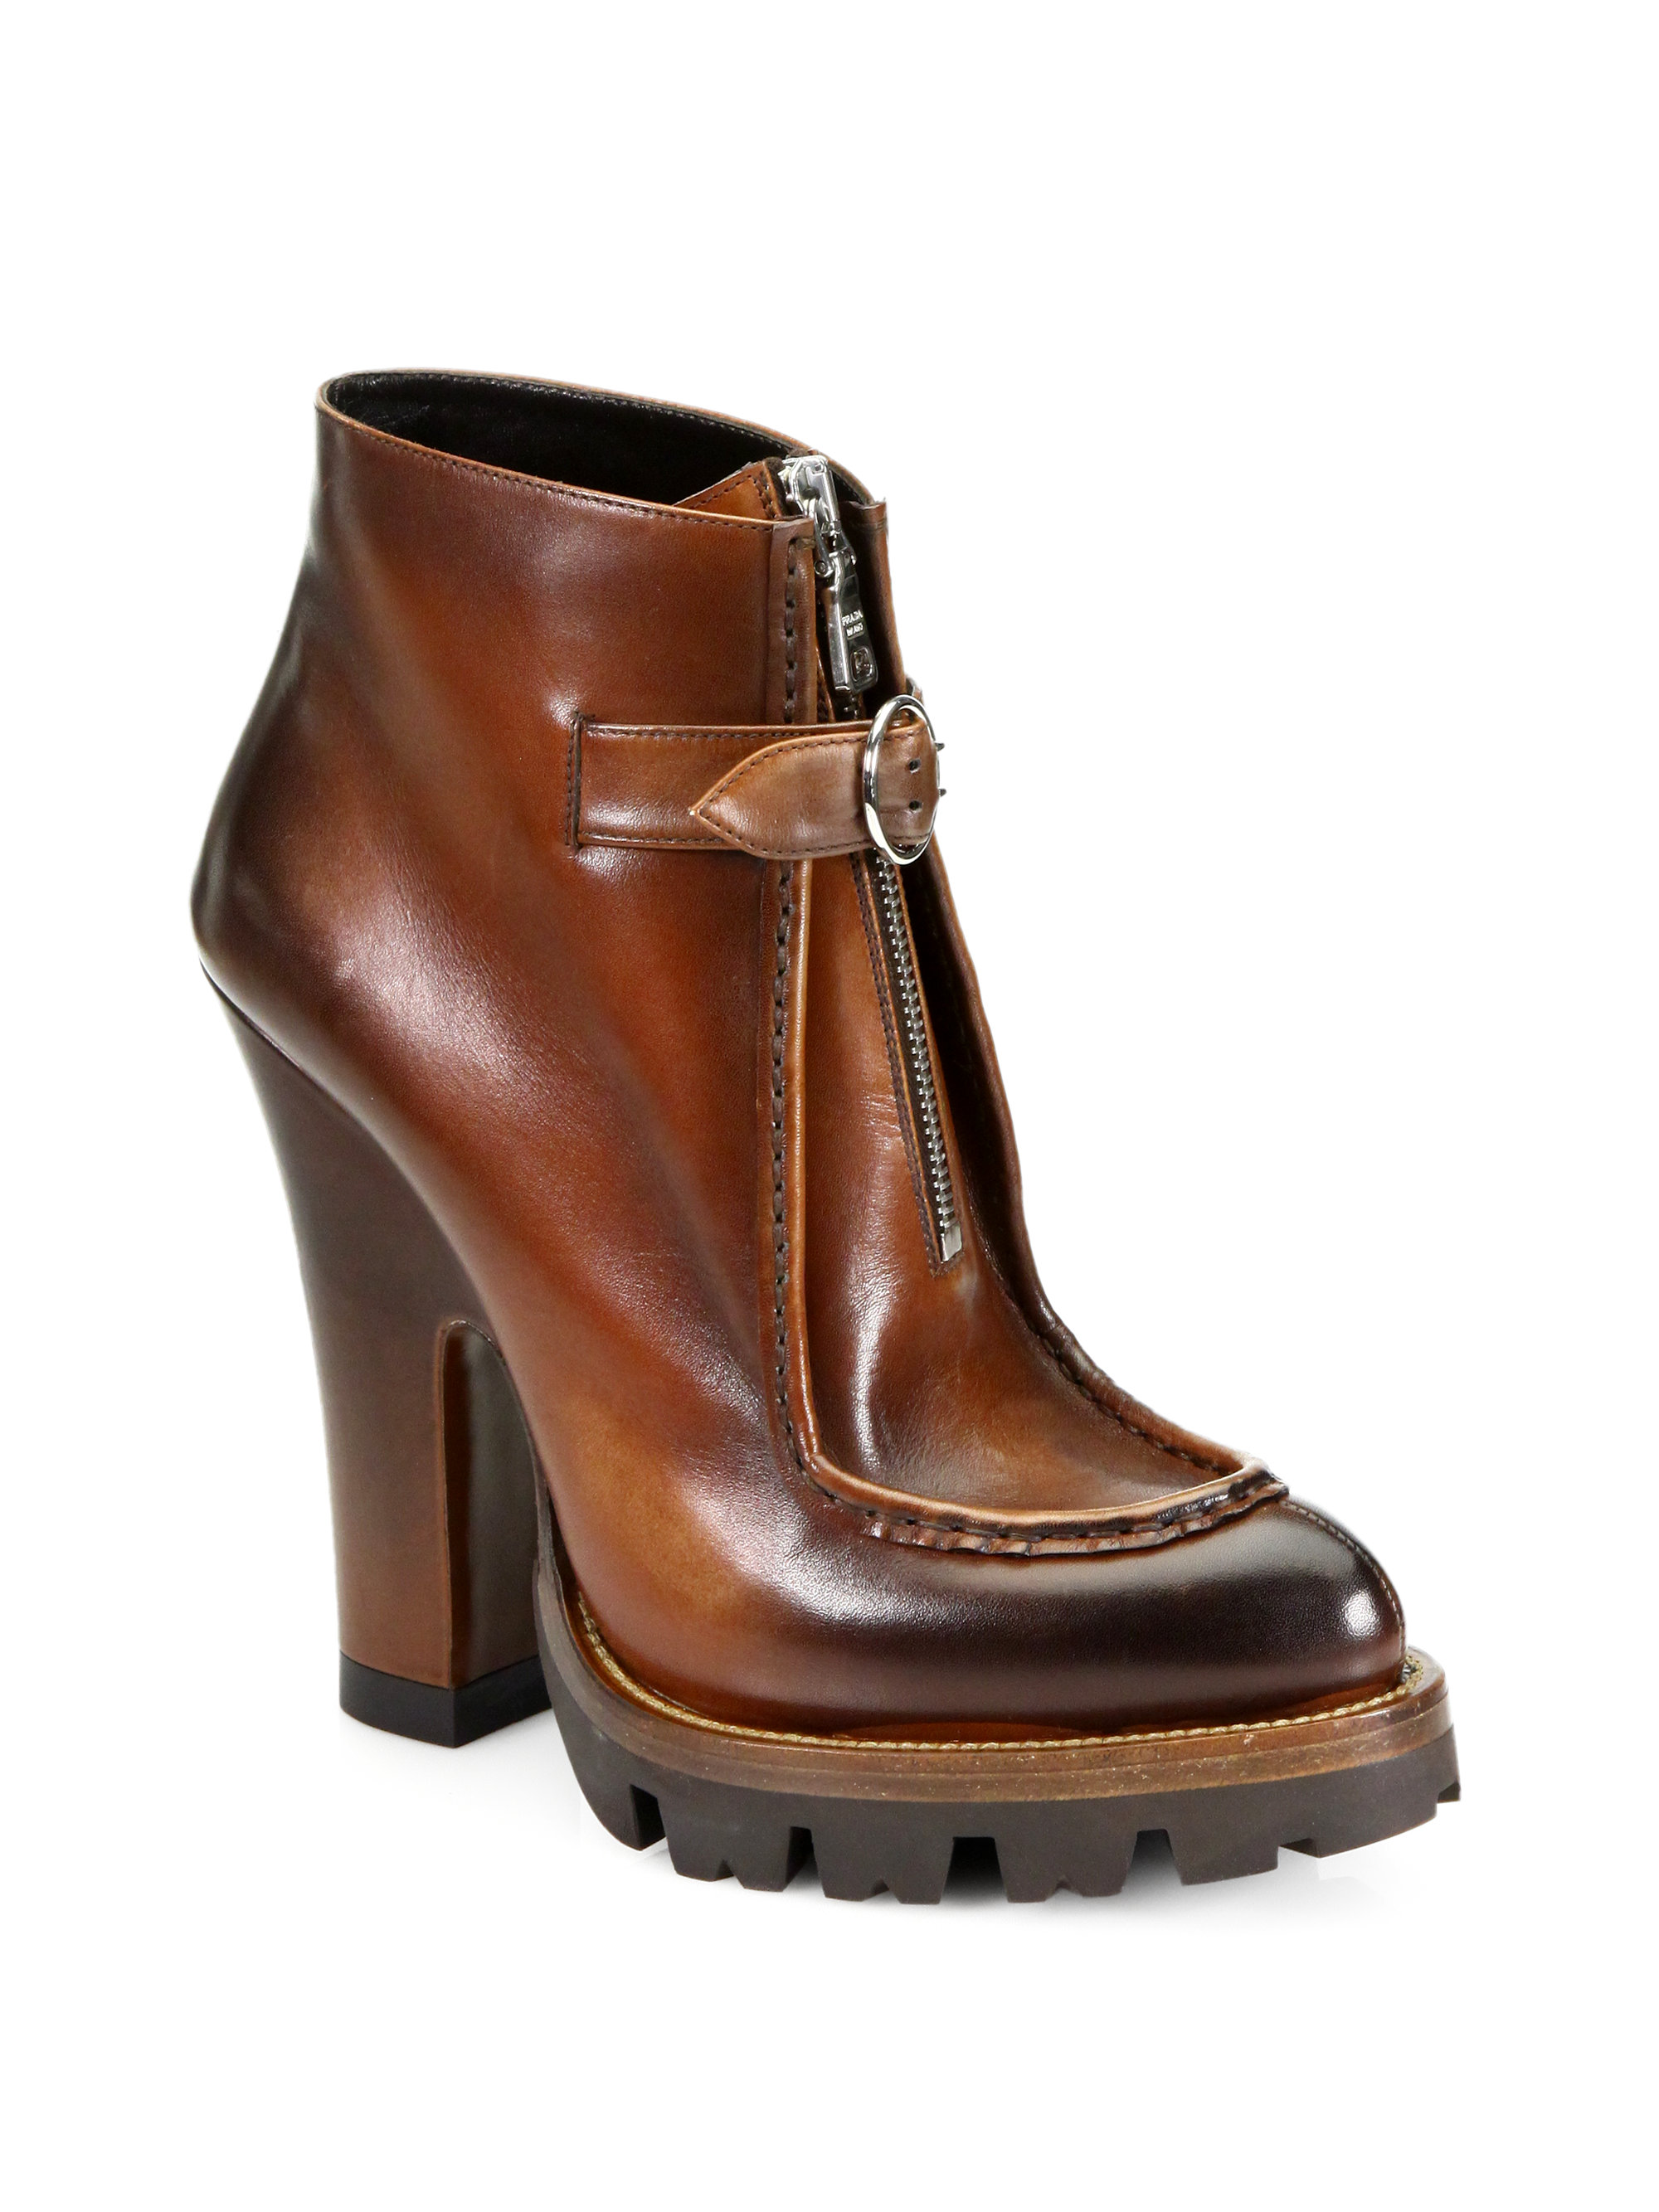 prada leather zipperdetail platform ankle boots in brown